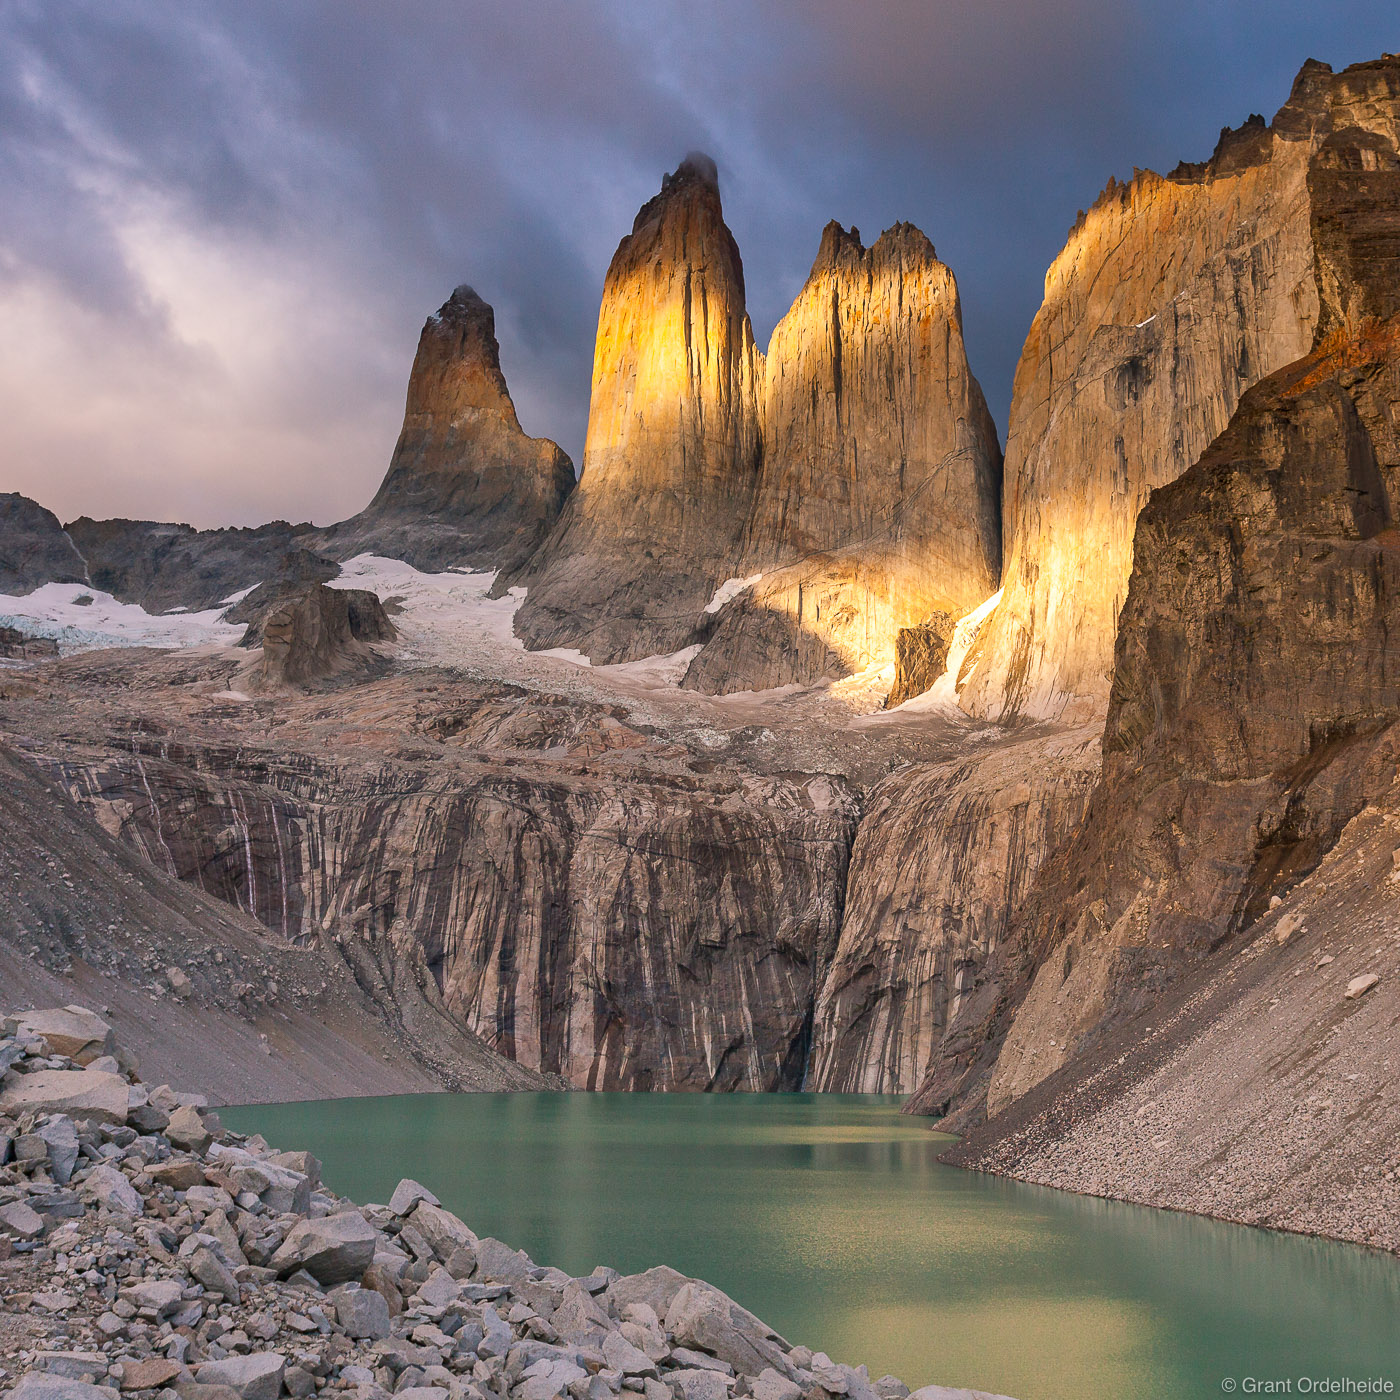 Morning light on the Towers in Chile's Torres del Paine National Park.